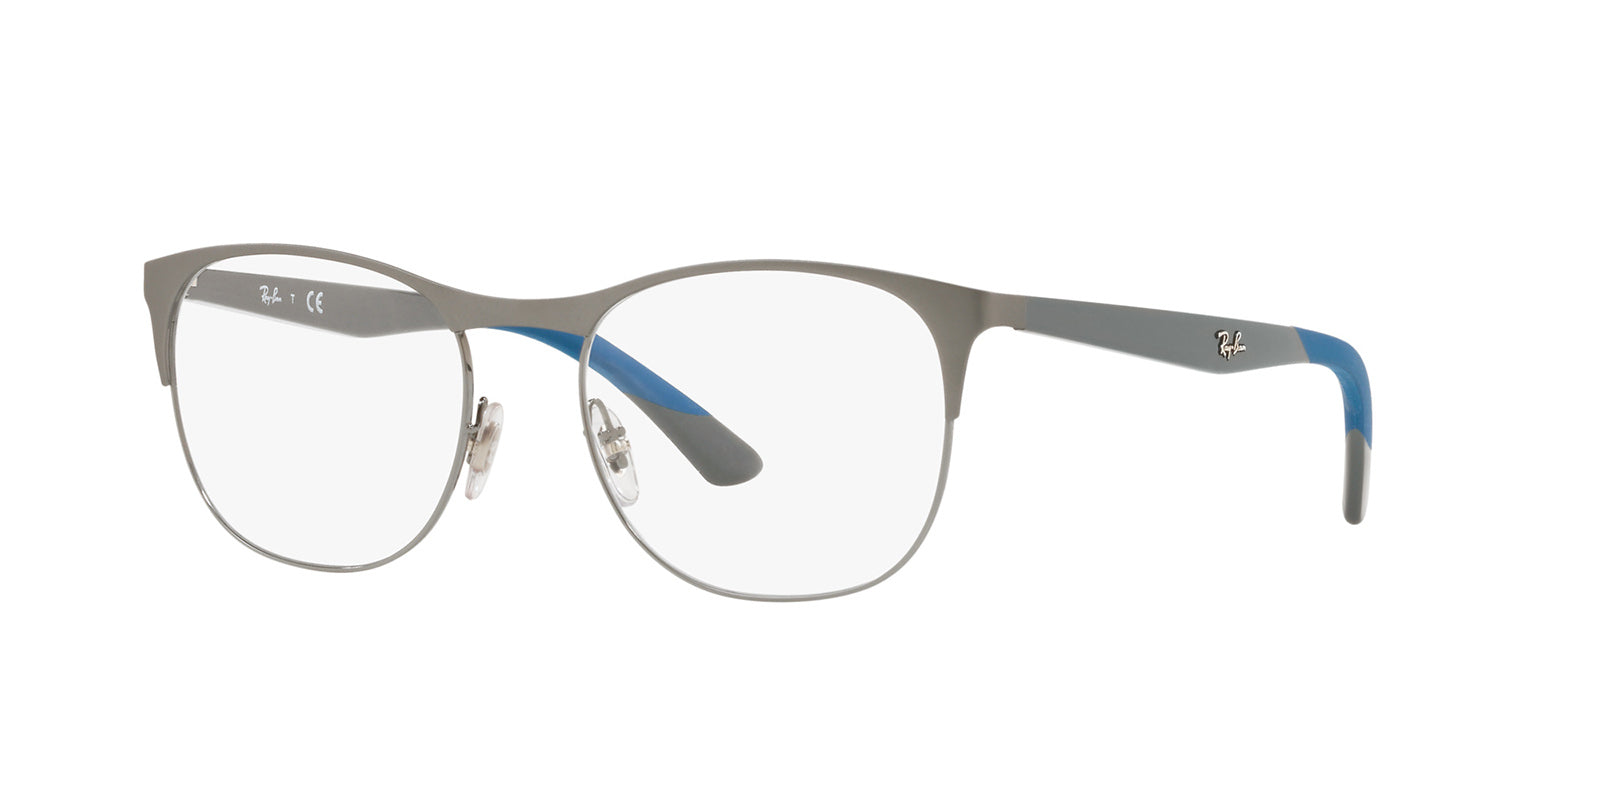 Ray Ban Eyeglasses RB6412 2620 Rx-ABLE